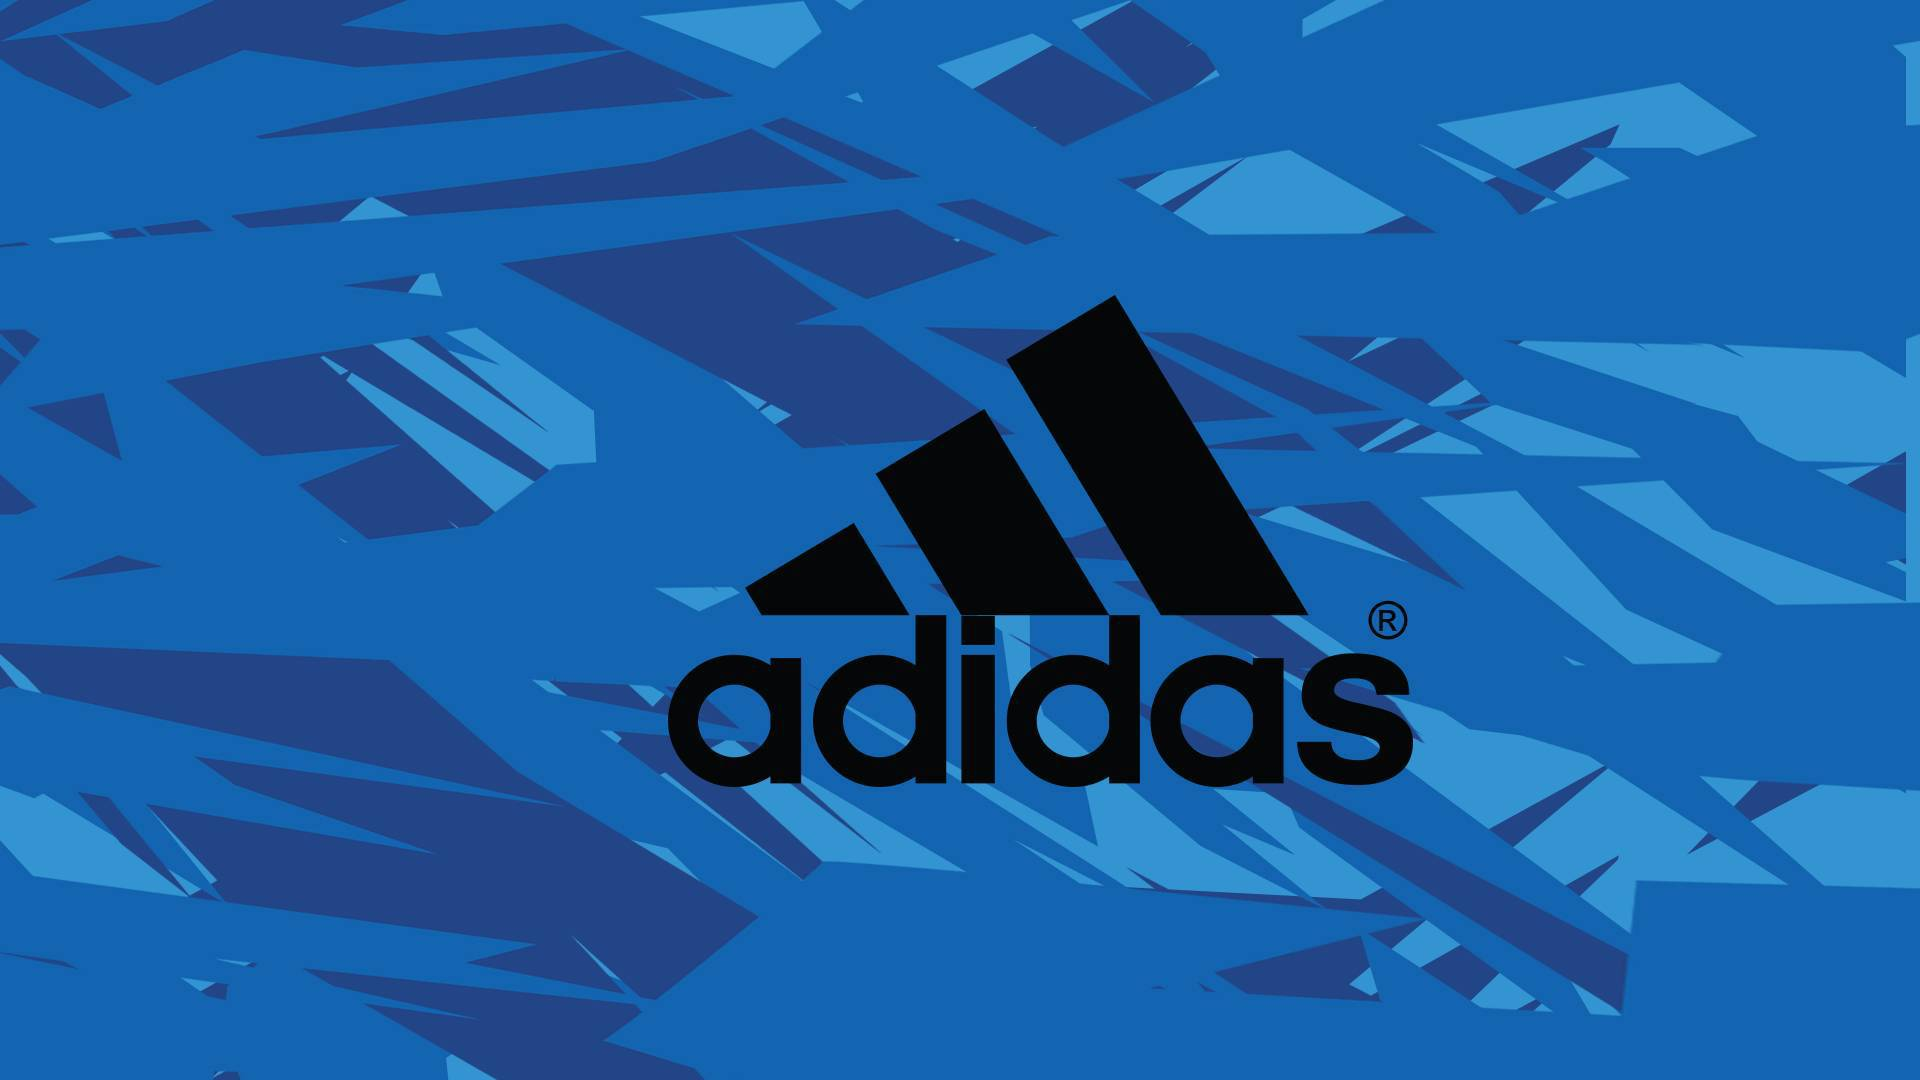 adidas wallpapers images photos pictures backgrounds